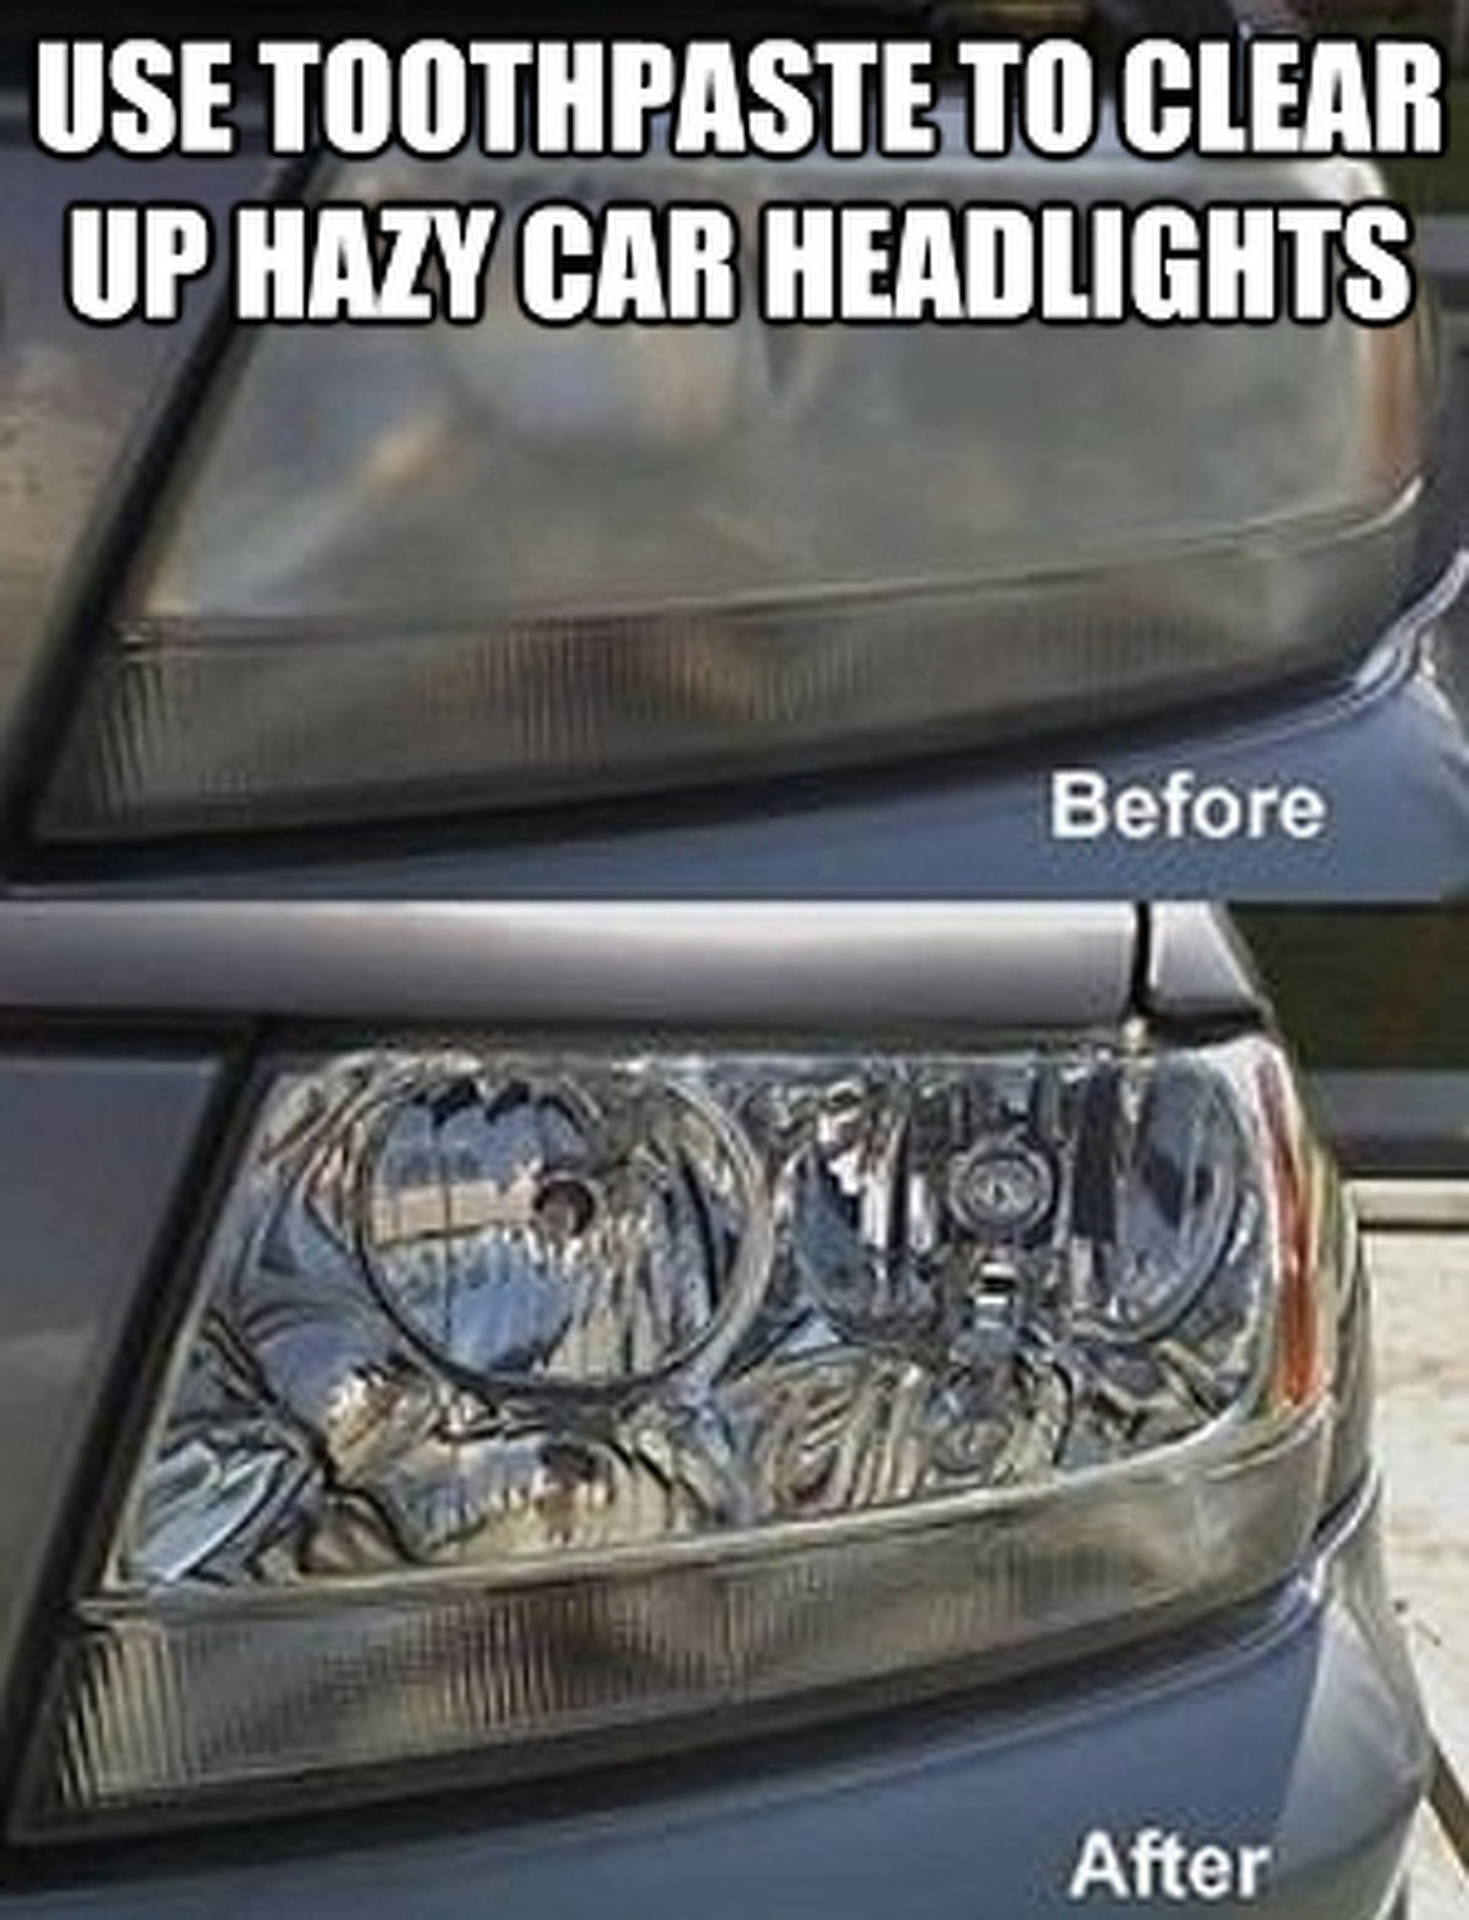 10 Epic Car Hacks [w/videos]